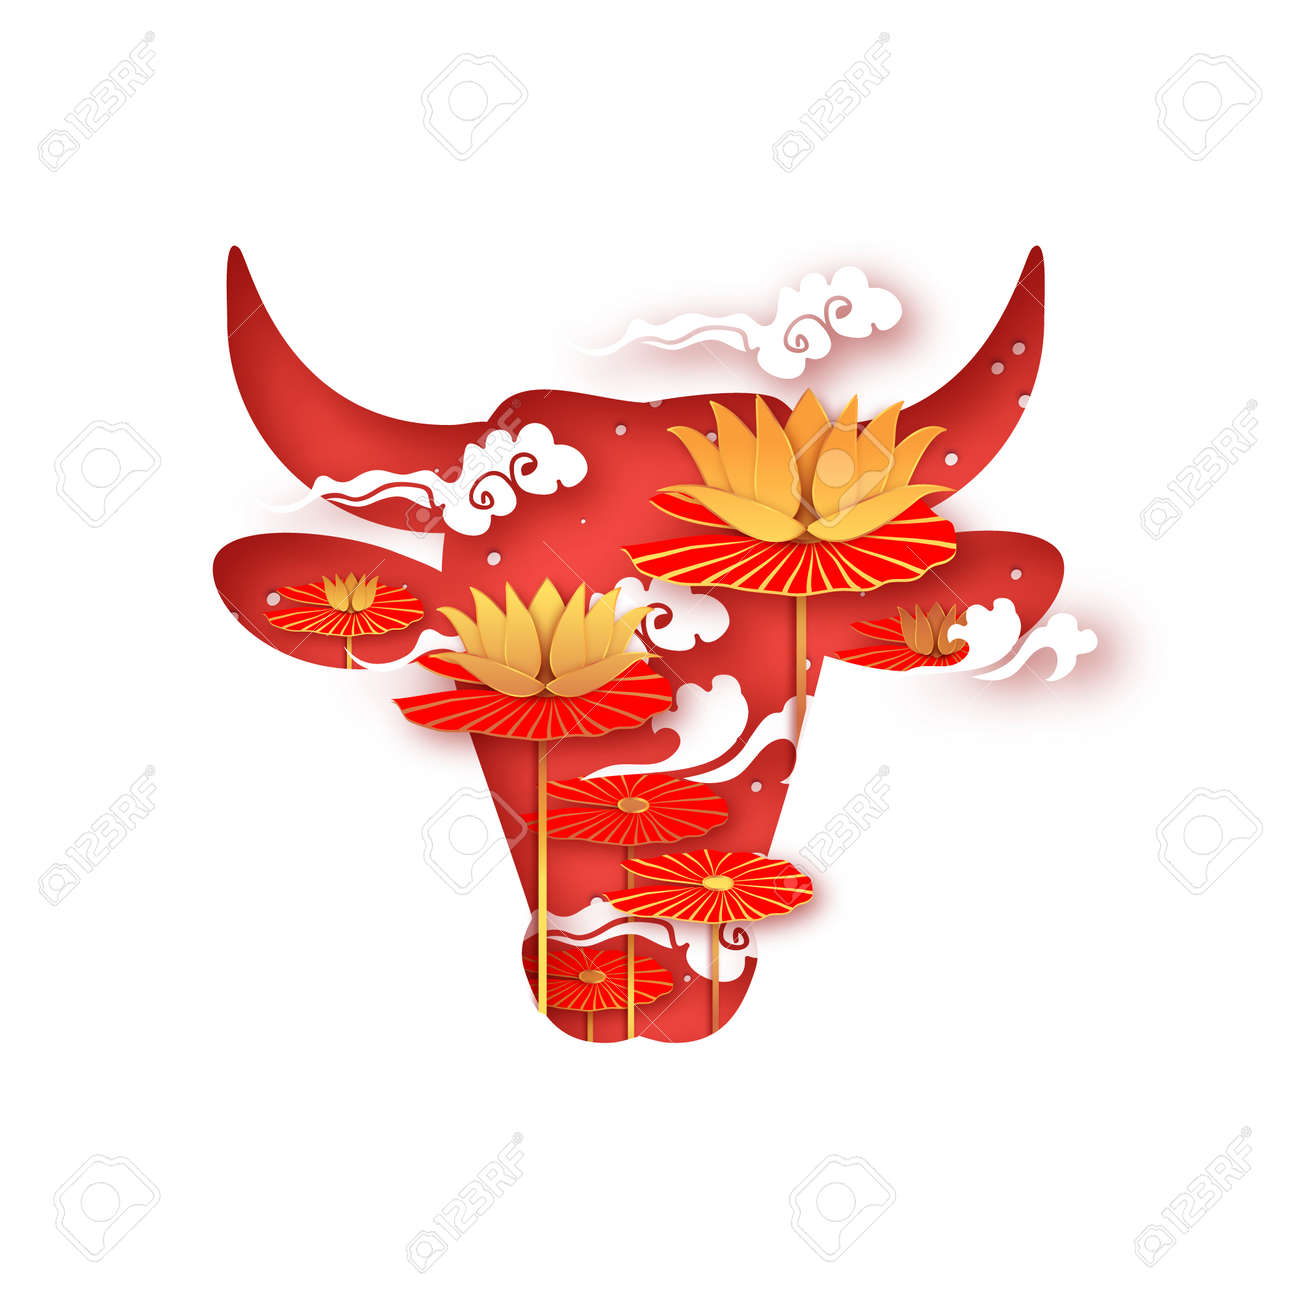 Bull New Year. Lotus Flower. Happy New Year. Bull, ox, cow. Lunar horoscope sign in paper cut style. Red and Gold. Winter holidays. - 160154909